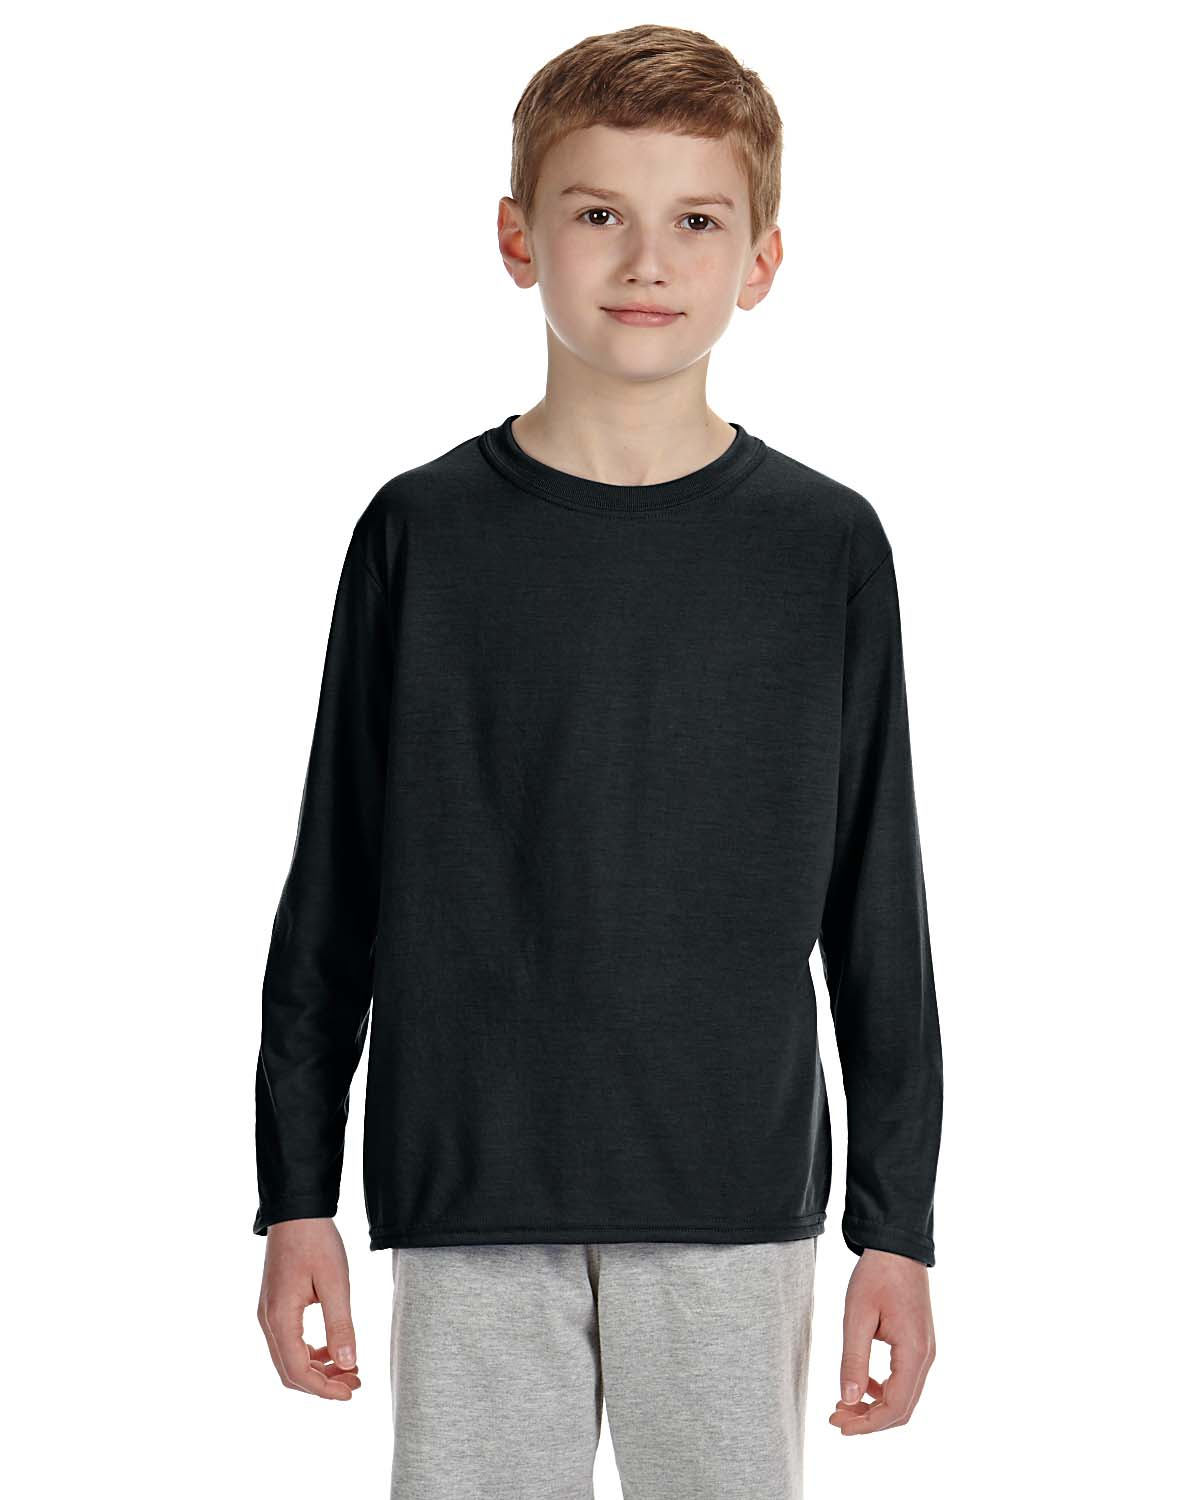 New gildan performance youth dri fit long sleeve t shirt for Long sleeve fitted tee shirt